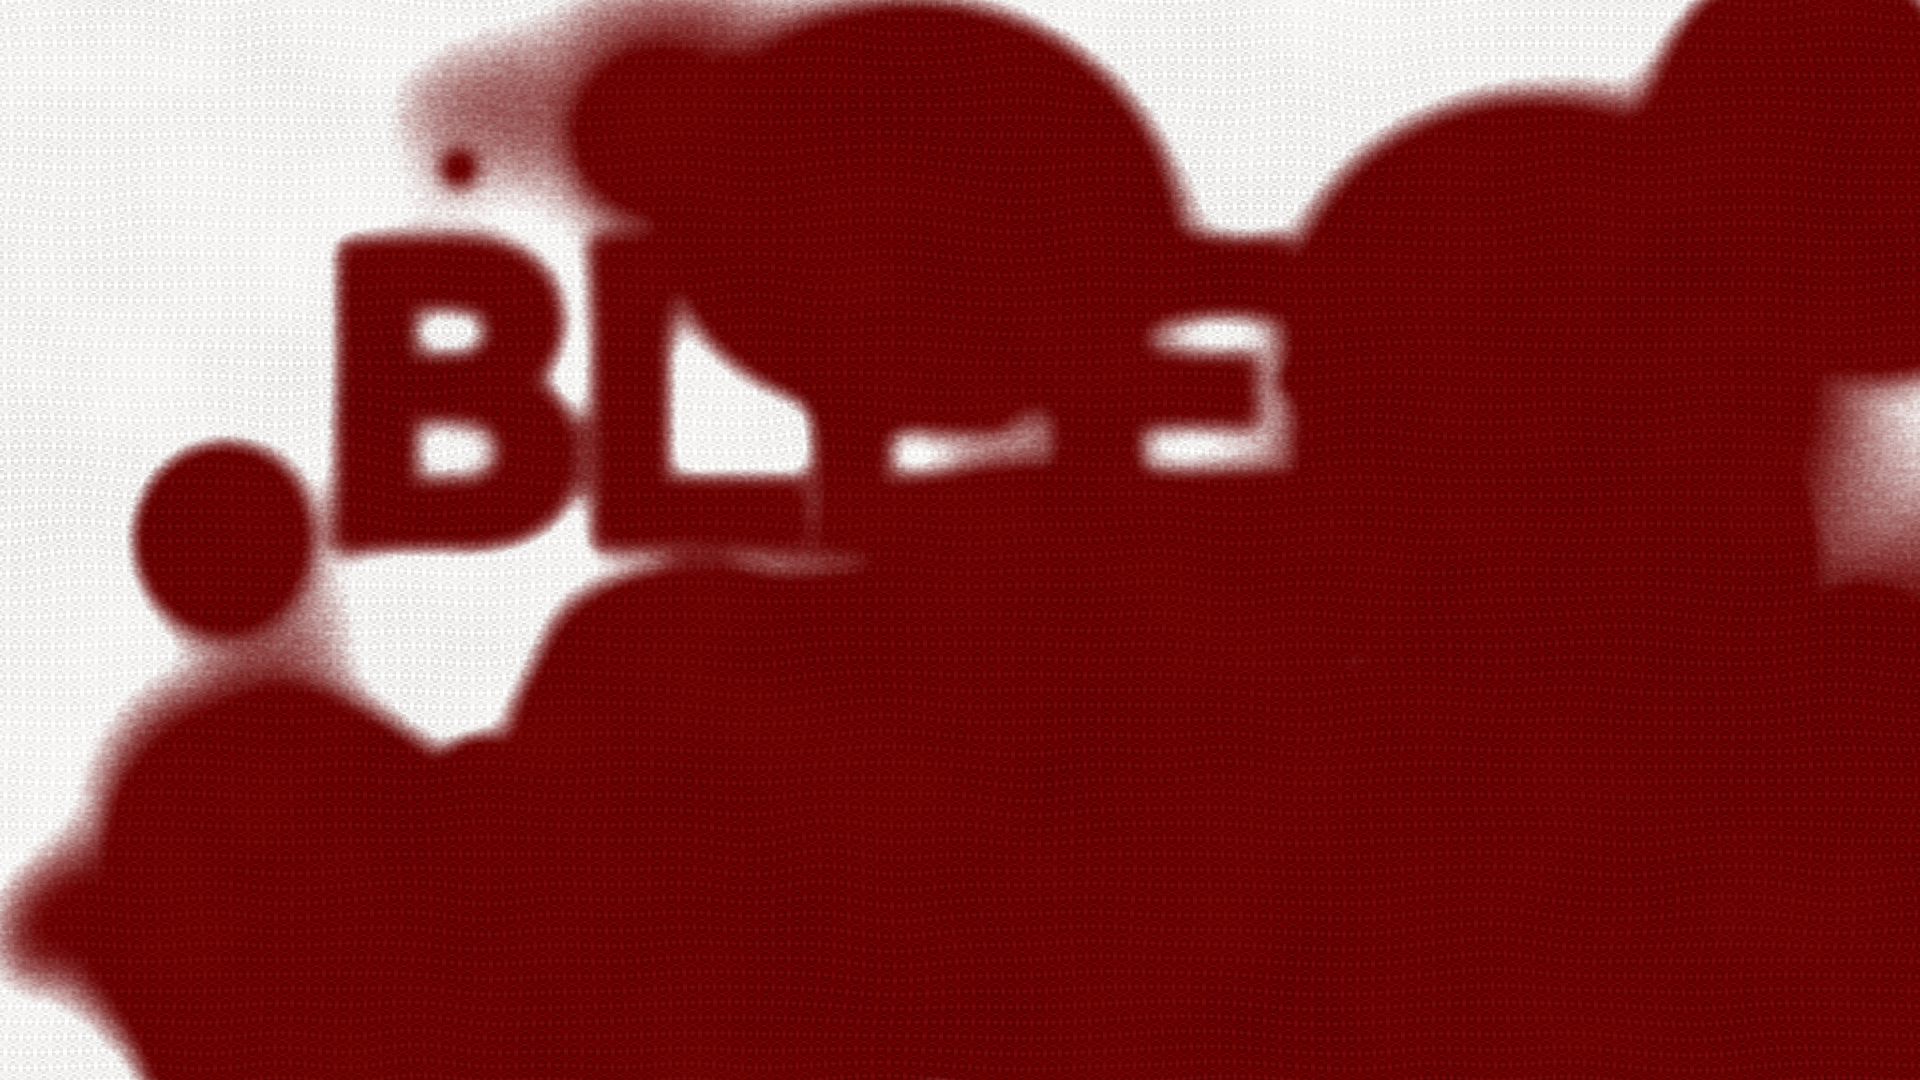 Free After Effects Project File Bleed Out Short Form Video